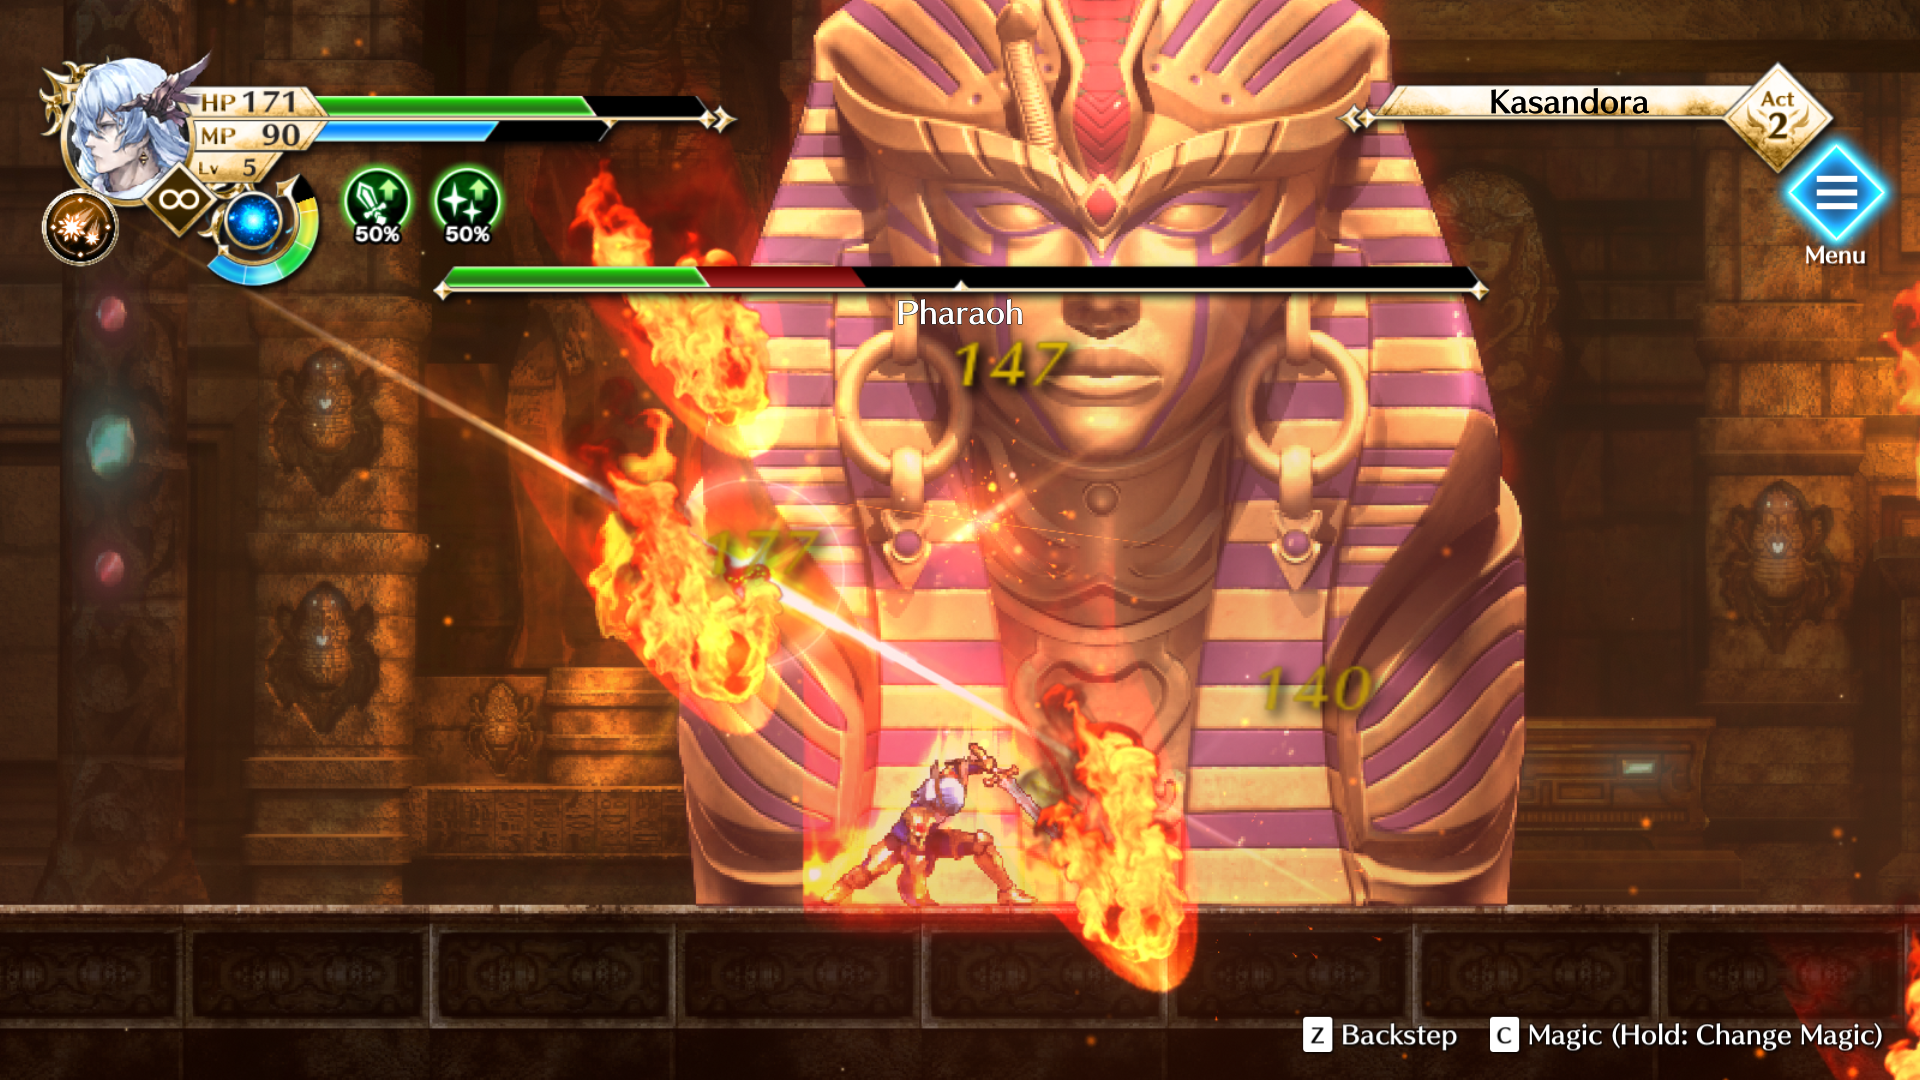 Gameplay screenshot of the Actraiser Renaissance protagonist in a battle against a Pharaoh enemy.